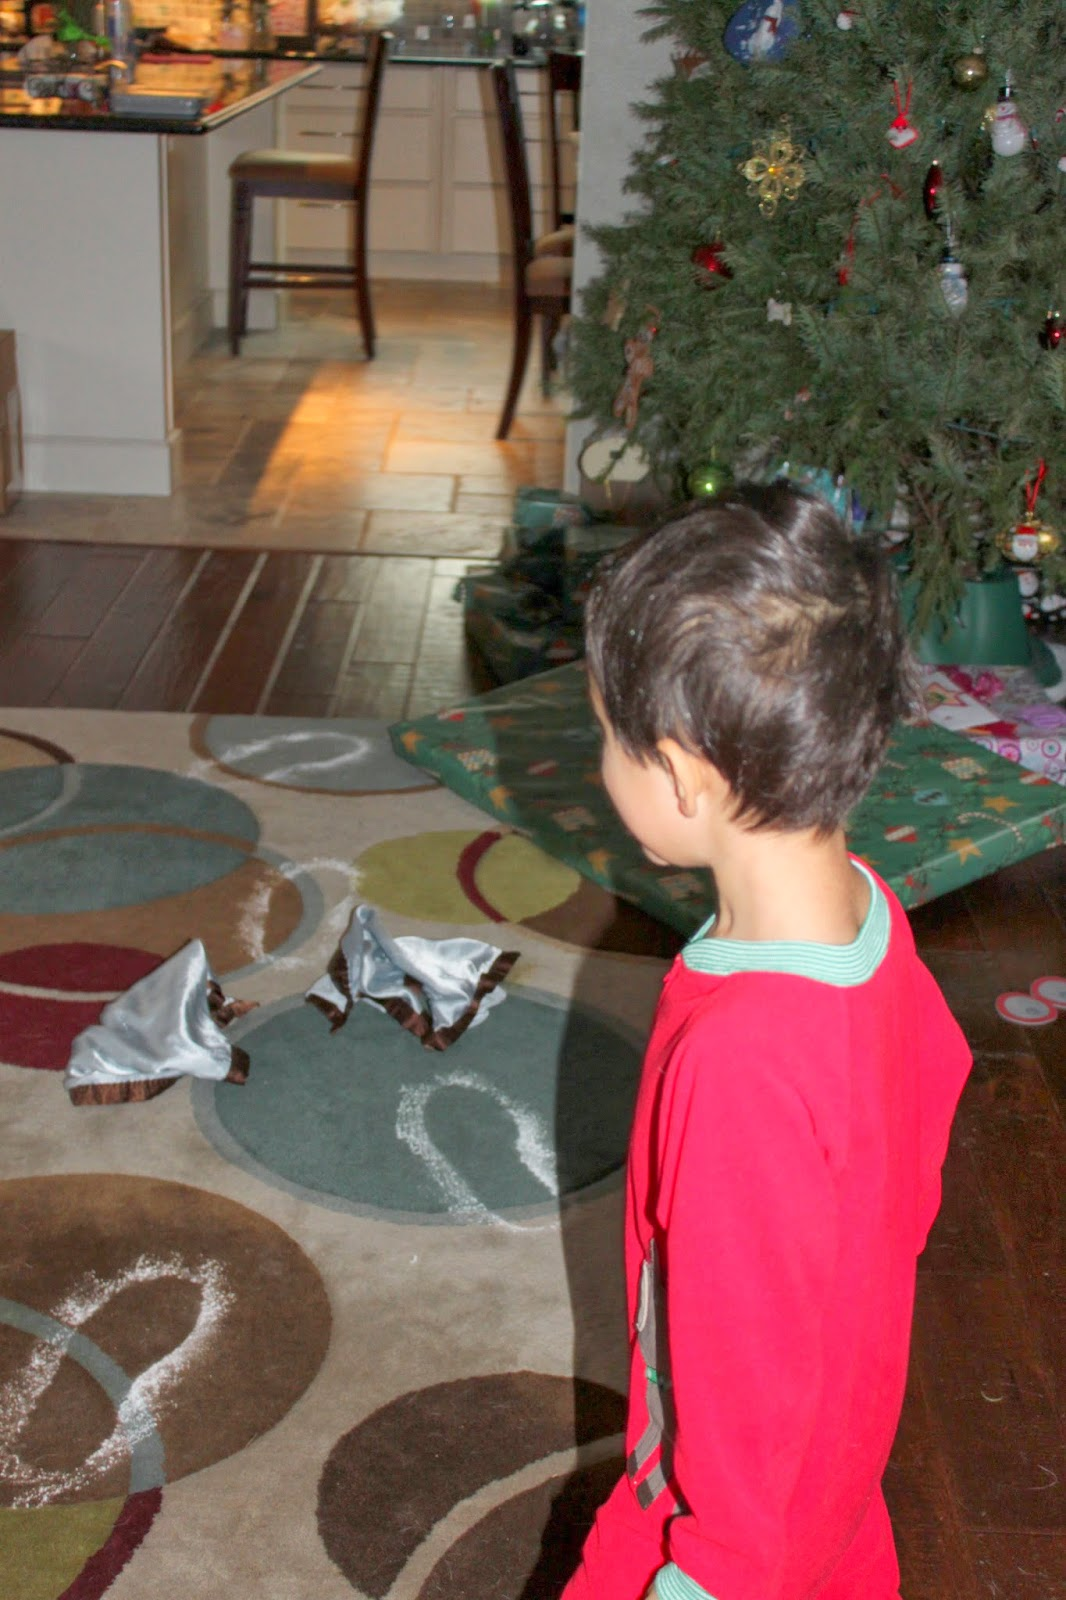 Superheroes and Sweetness: Christmas Morning - snowy footprints but ...